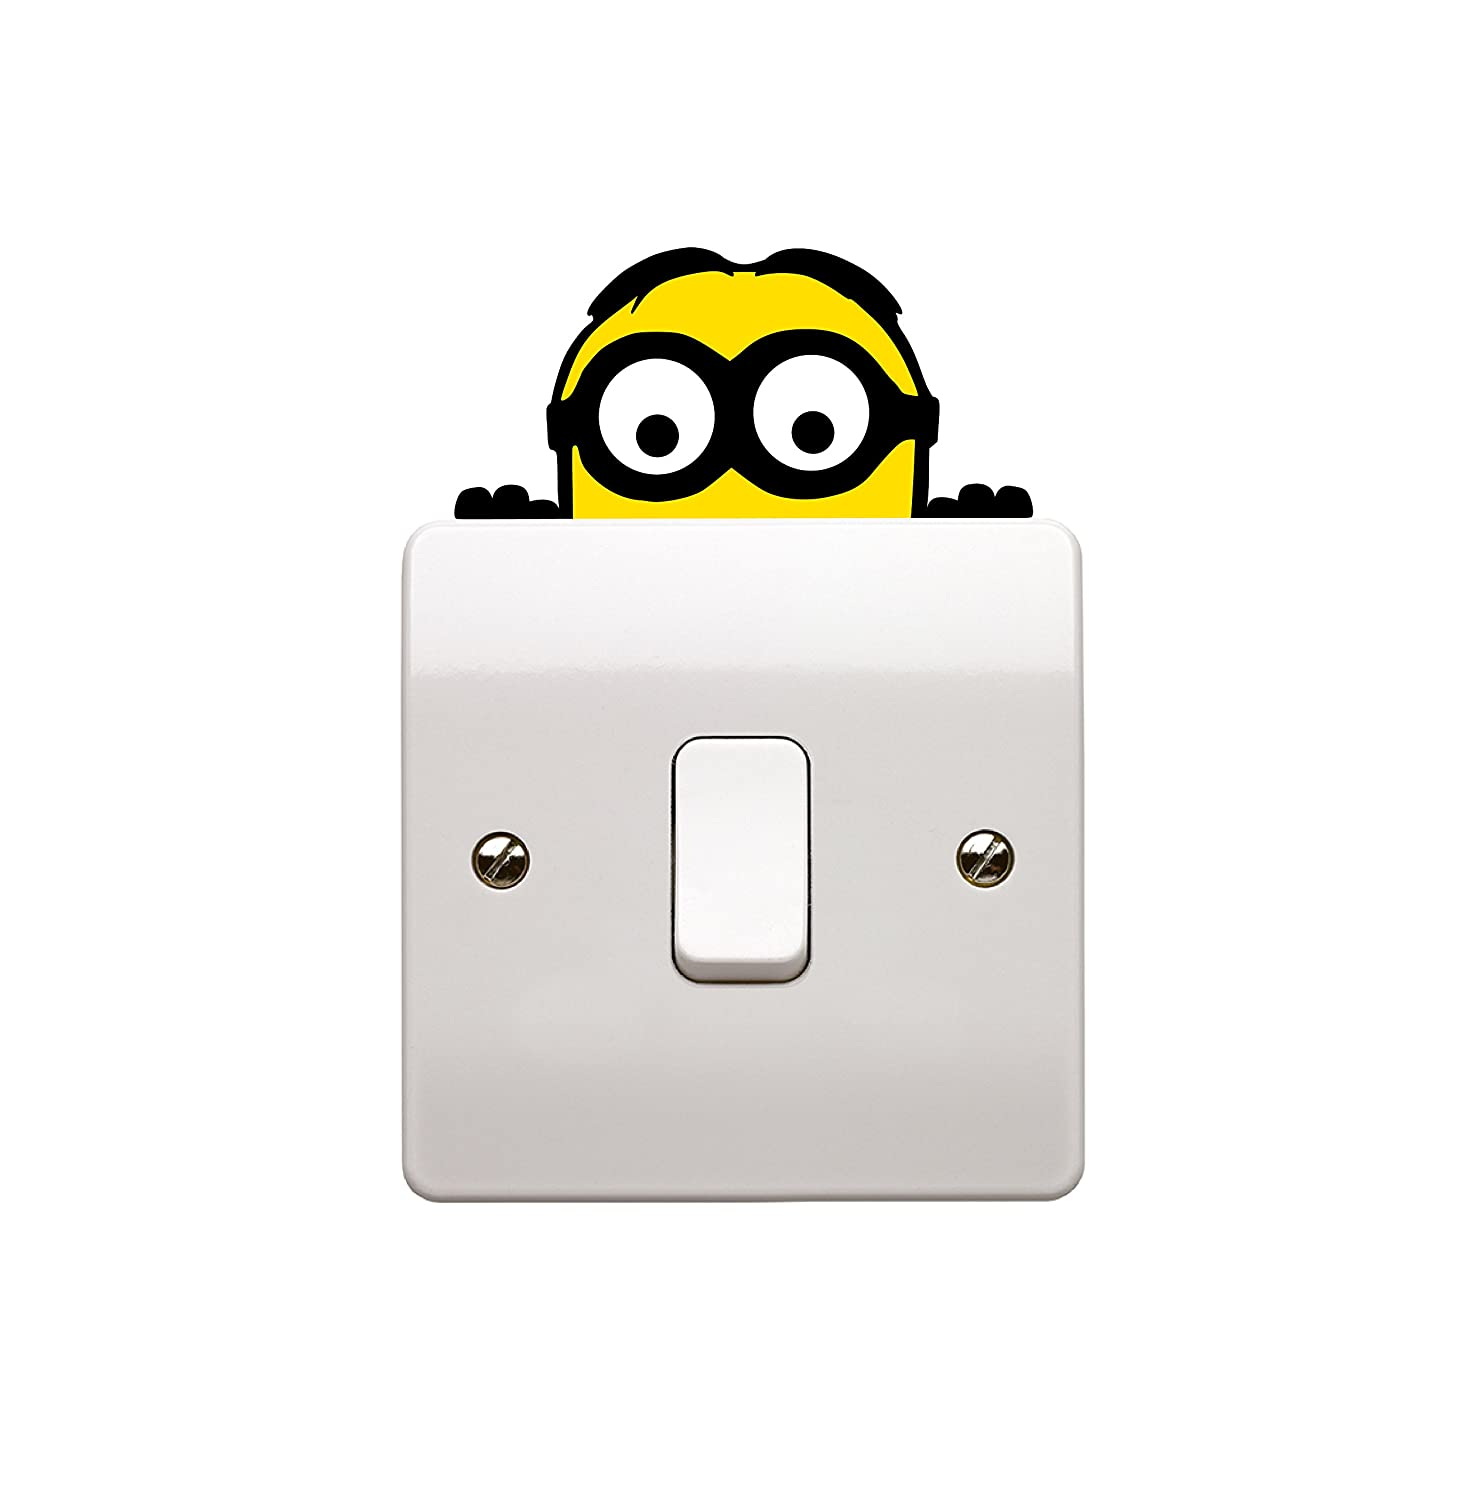 Epic Modz Minion Despicible Me Light Switch Vinyl Decal Sticker Child Room Lightswitch Wall Art - DESIGNED AND CREATED BY